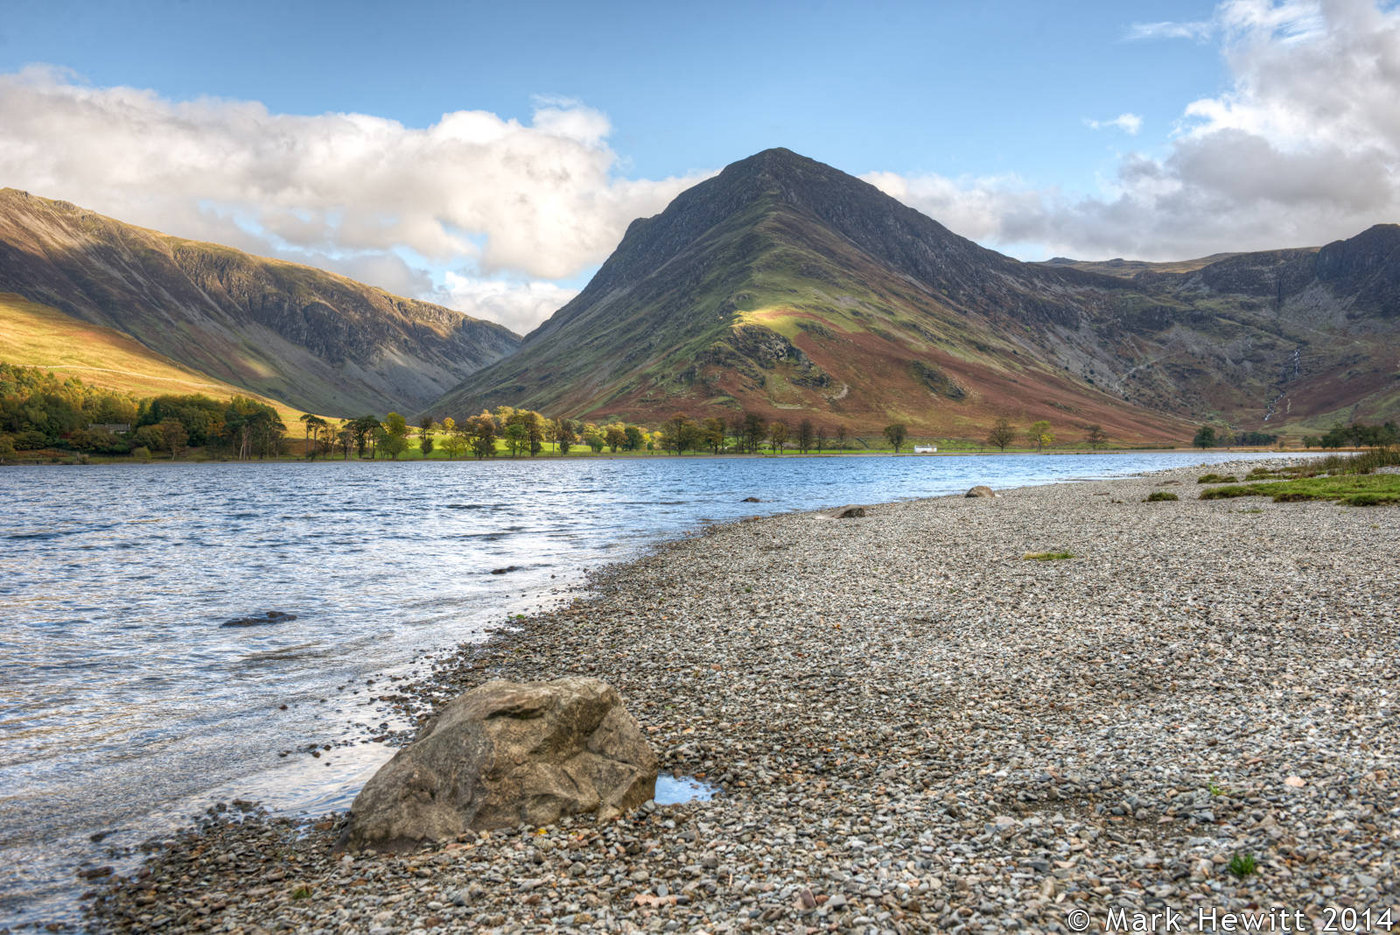 Dale Head & Fleetwith Pike From Buttermere Shoreline